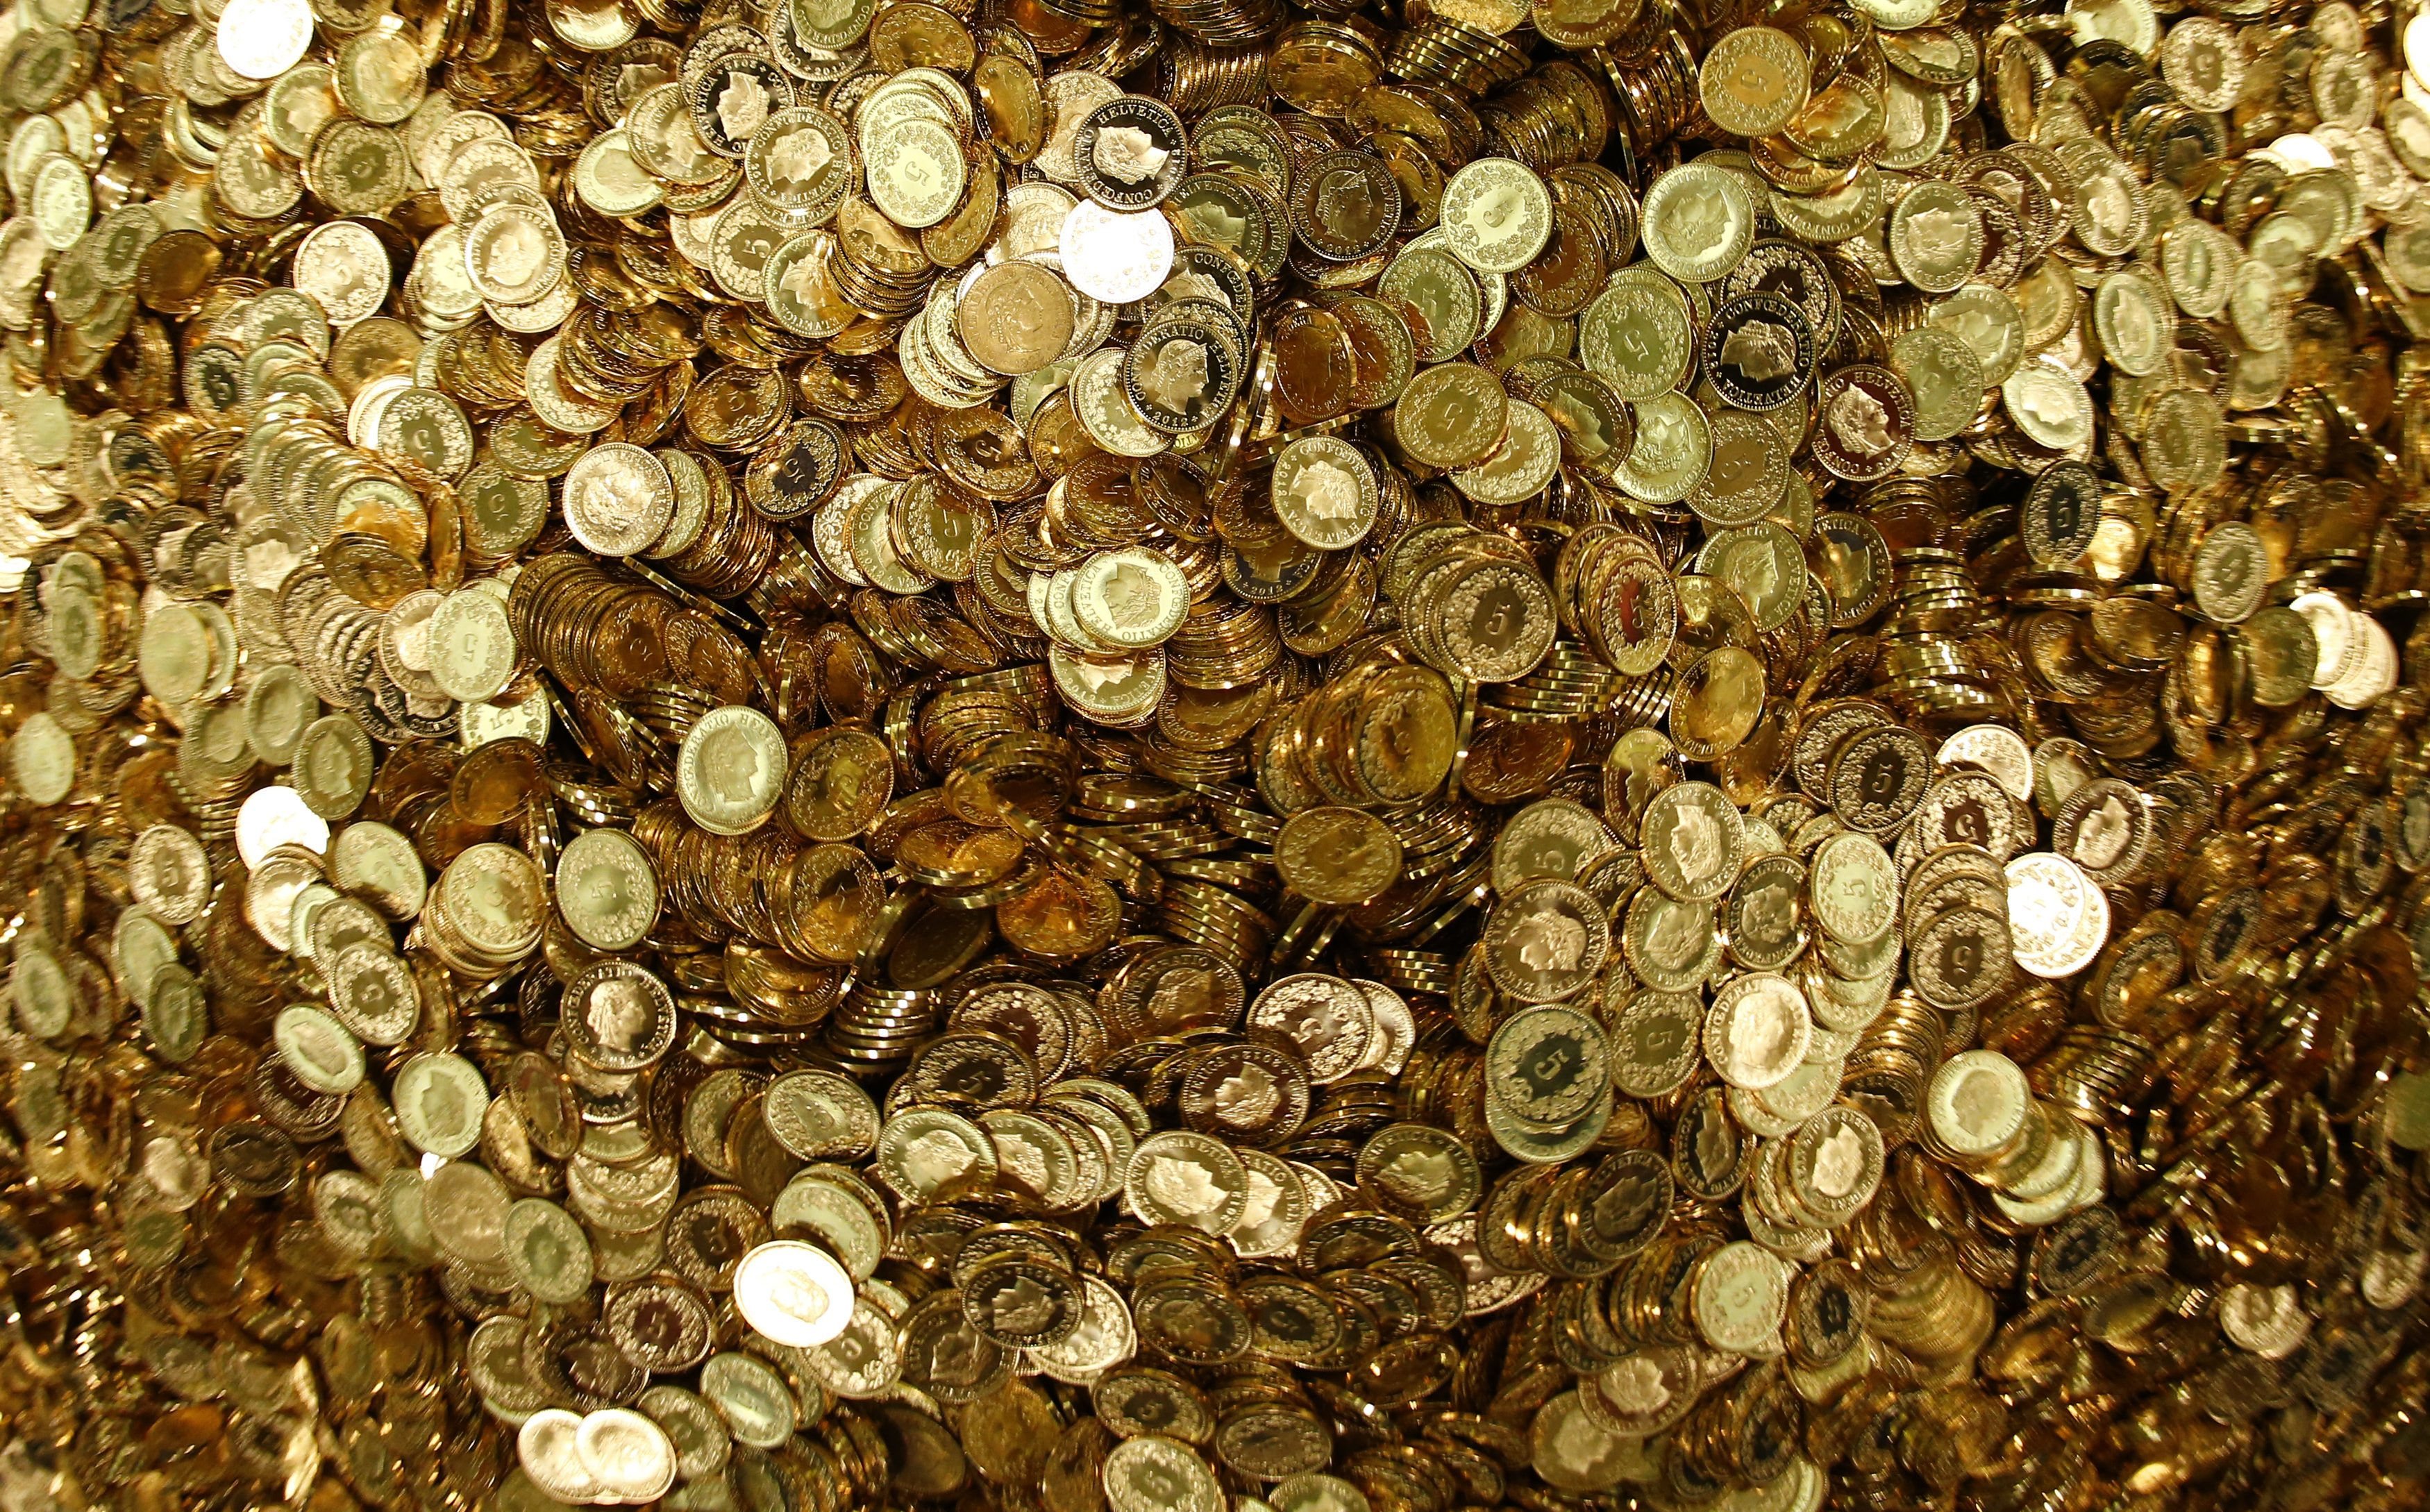 """Swiss Francs five cent coins are heaped in a pile as members for the initiative """"CHF 2,500 monthly for everyone"""" (grundeinkommen) open rolls of five cent coins in the old vault of the former Schweizerische Volksbank in Basel October 1, 2013. The committee dumped 8,000,000 five cent coins, weighting 15 tones, over the Federal Square in Bern on Friday, before delivering 126,000 signatures to the Chancellery to propose a change in the constitution to implement their initiative. The initiative aims to have a minimum monthly disposal household income of CHF 2,500 (US$ 2,700) given by the government to every citizen living in Switzerland.    Picture taken October 1, 2013."""